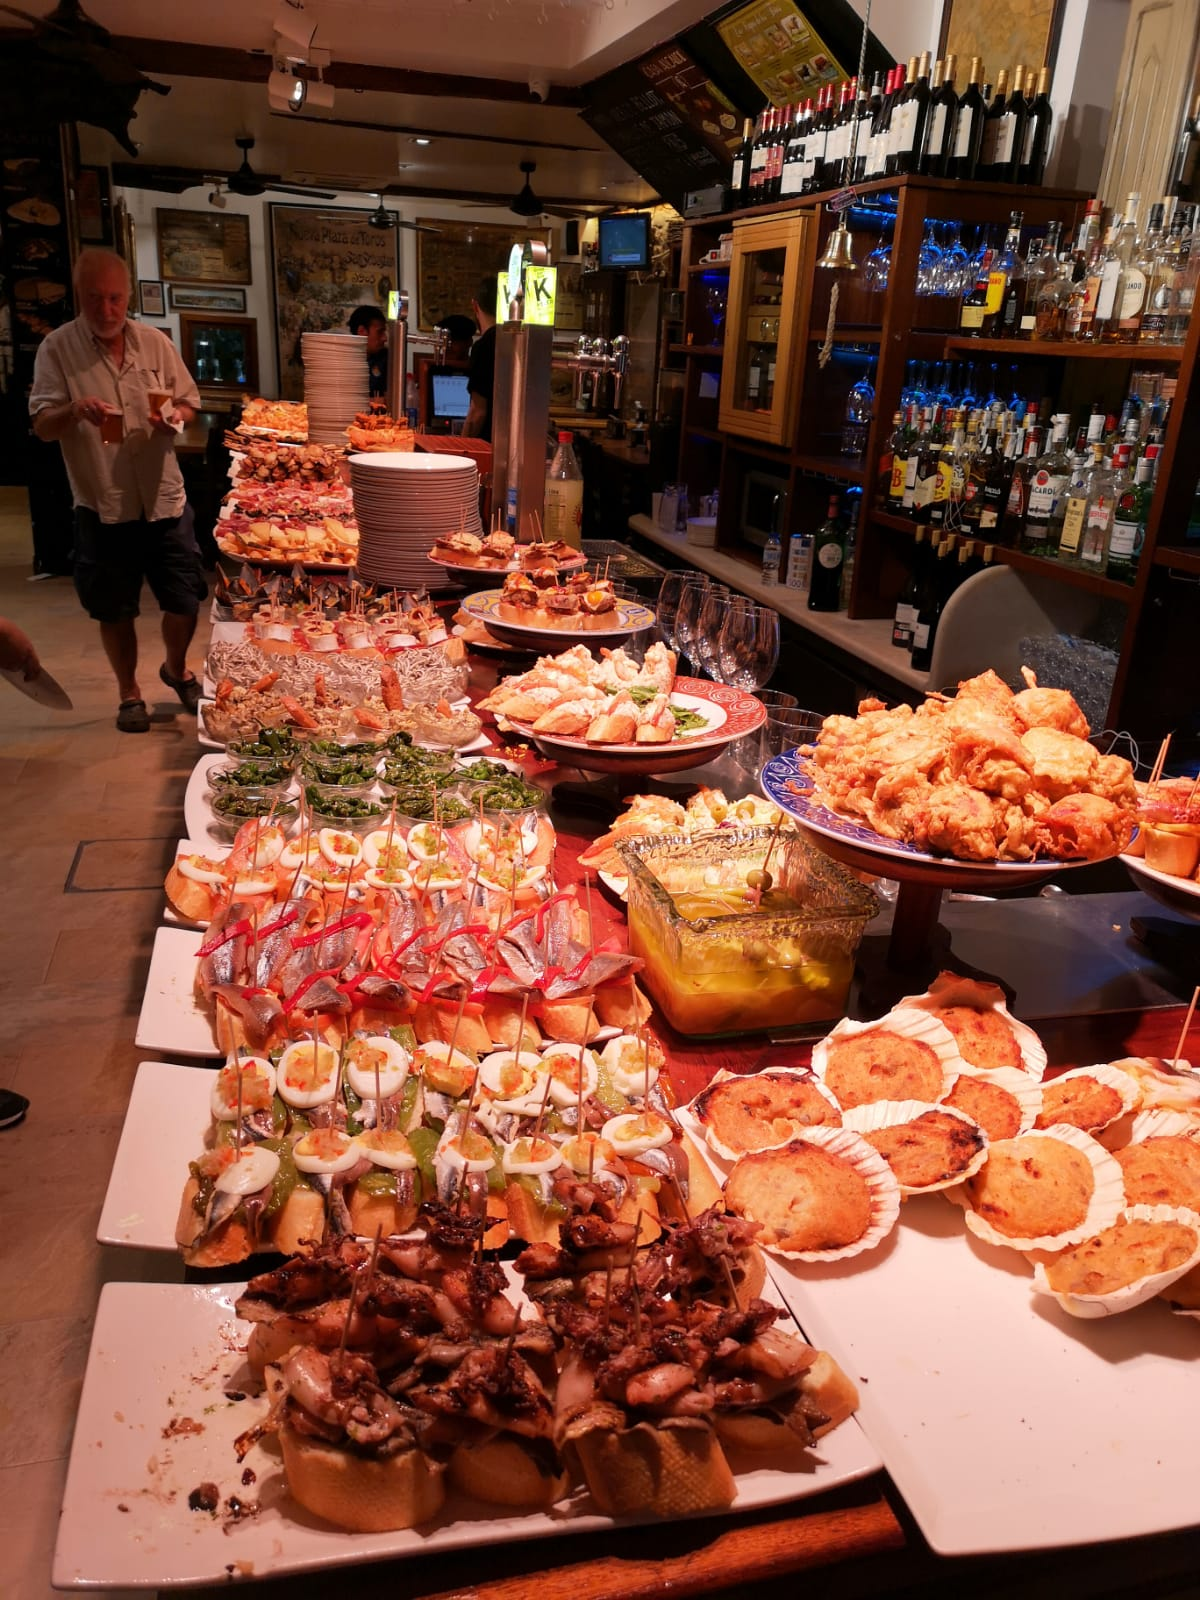 Tapas and food in France